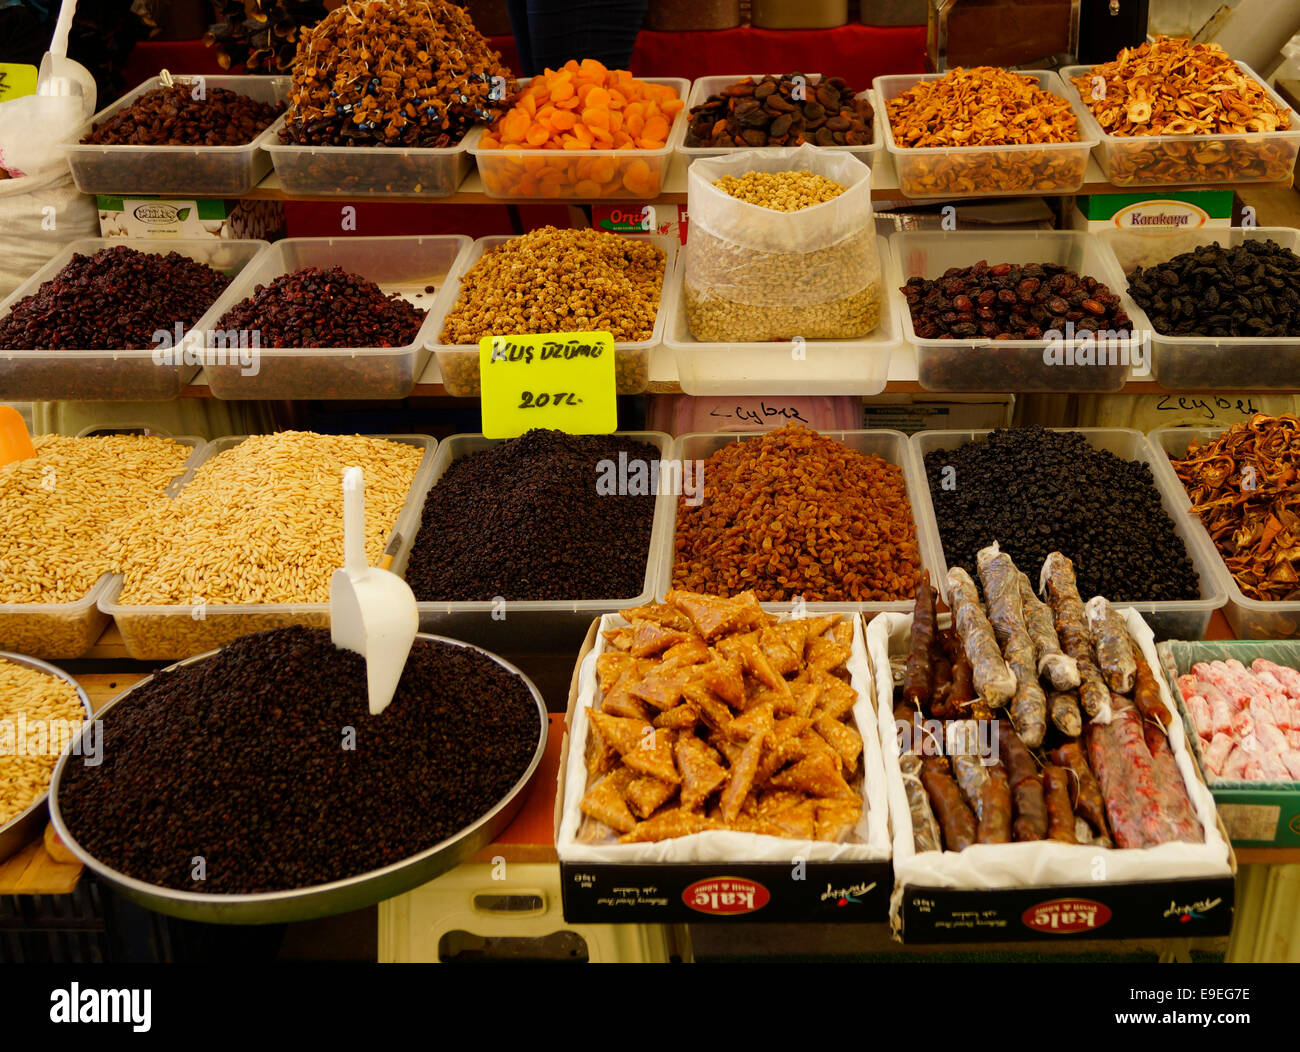 All the Delights of the Market - Stock Image